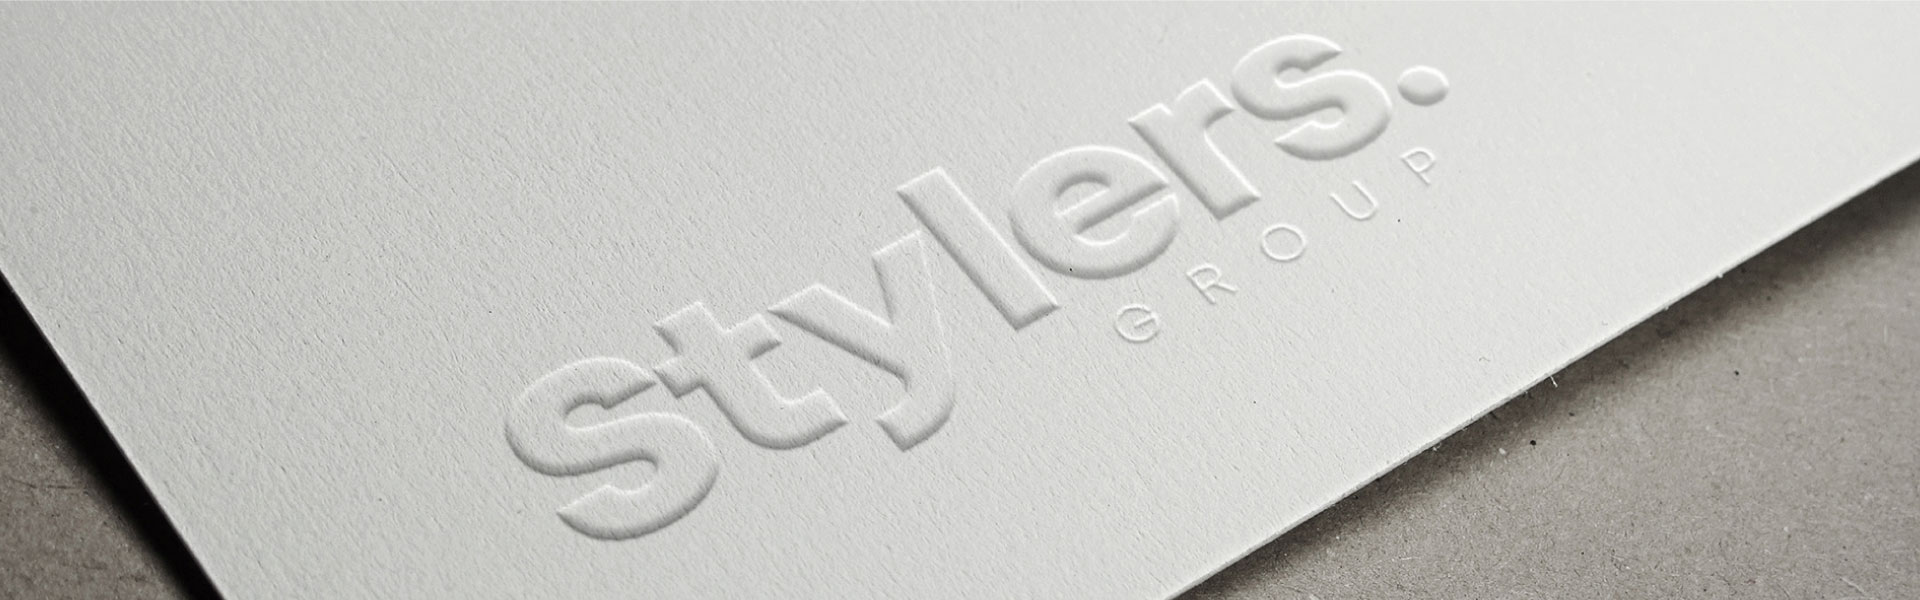 stylers-group-brand-logo-design-by-mapleweb-vancouver-canada-white-paper-mock